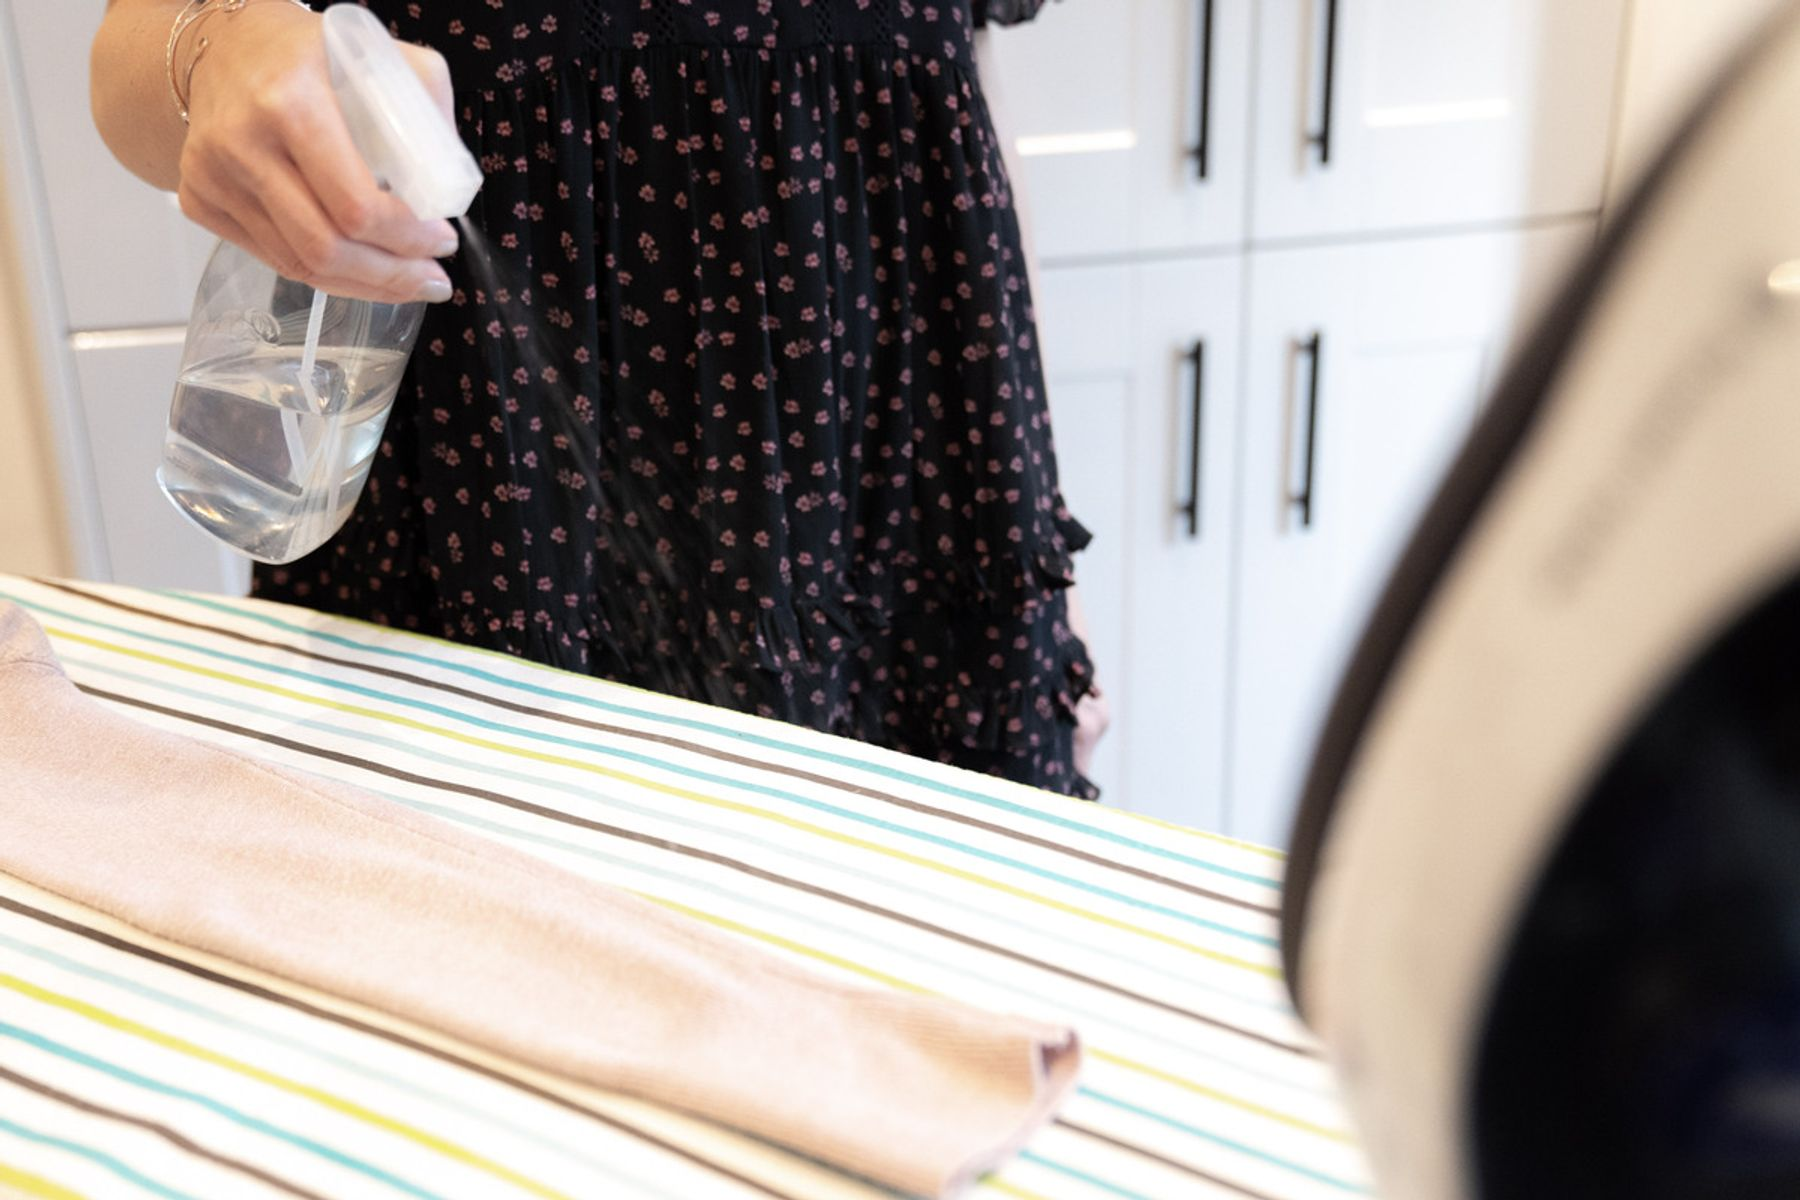 Using an ironing spray on a garment before it gets ironed